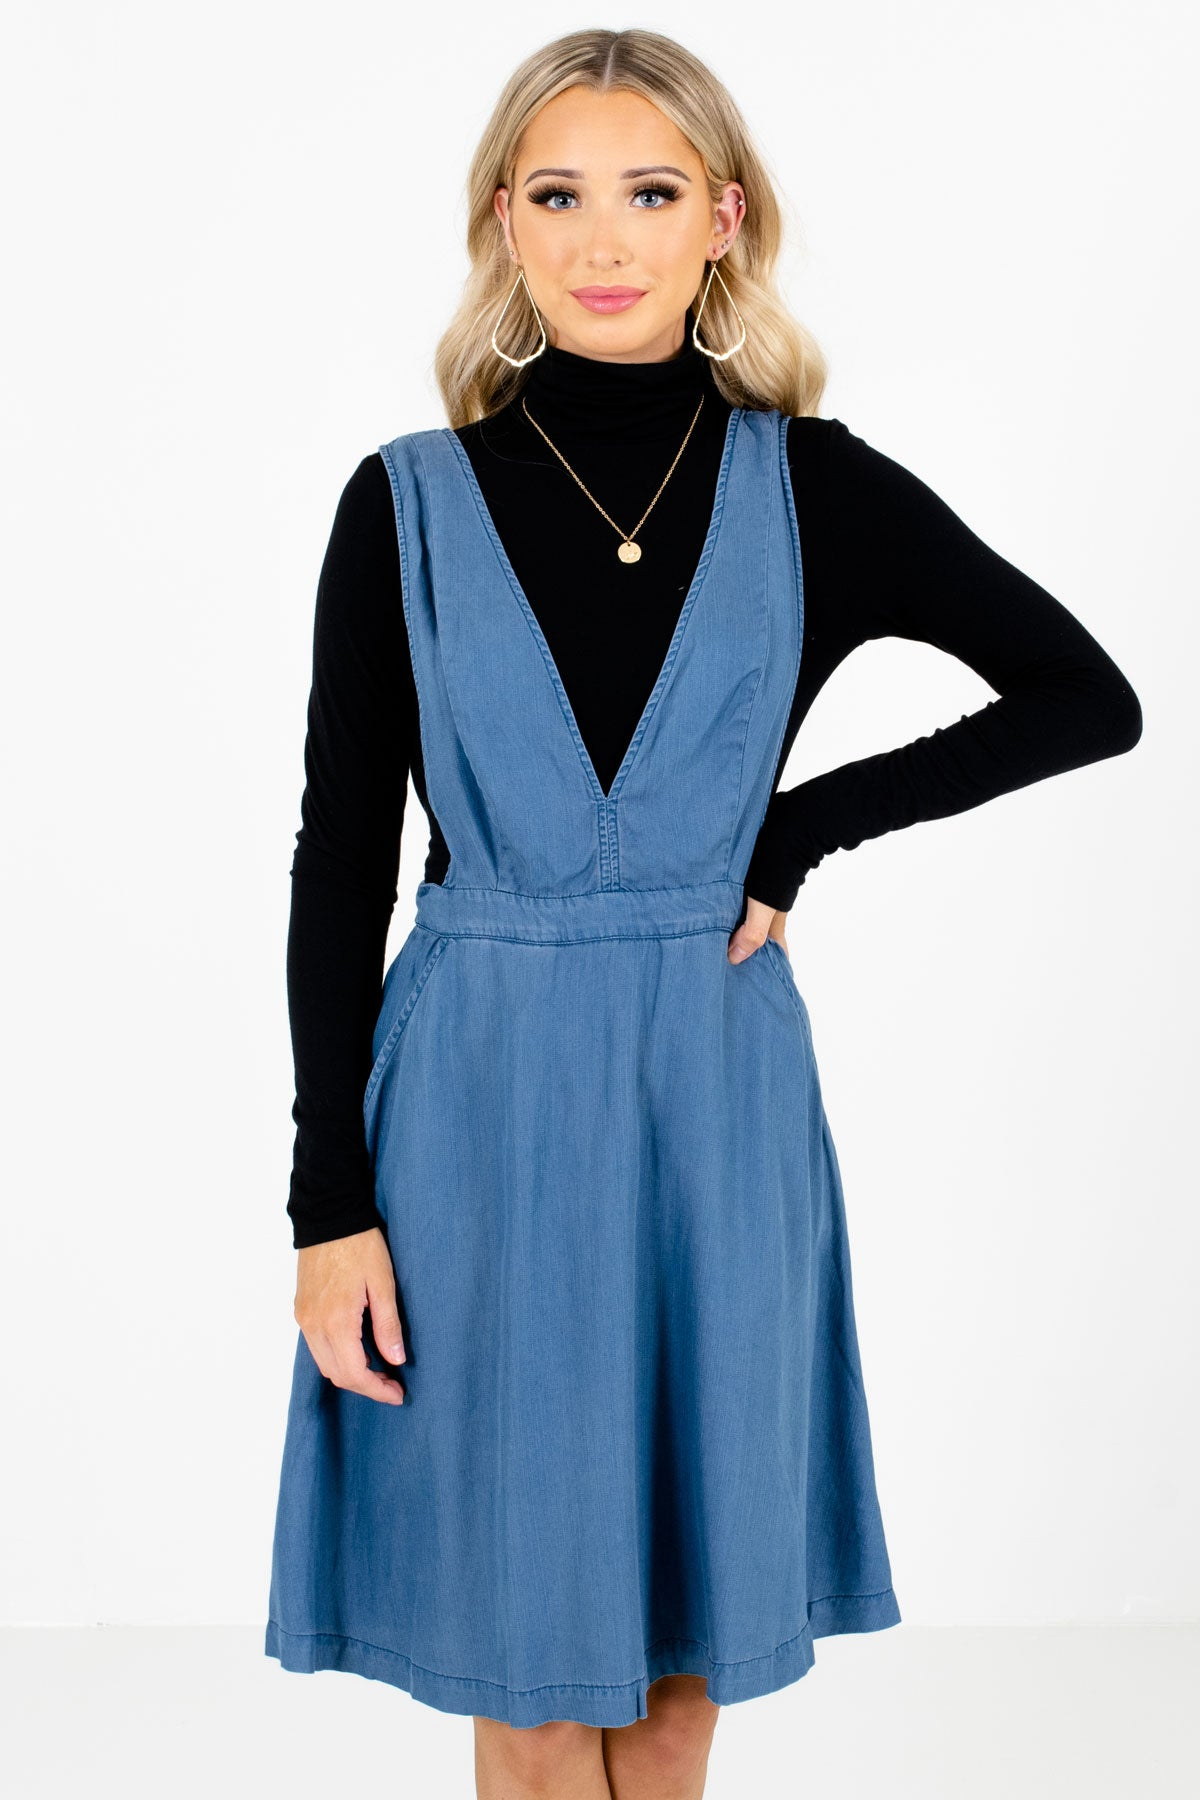 Blue Pinafore Style Boutique Knee-Length Dresses for Women